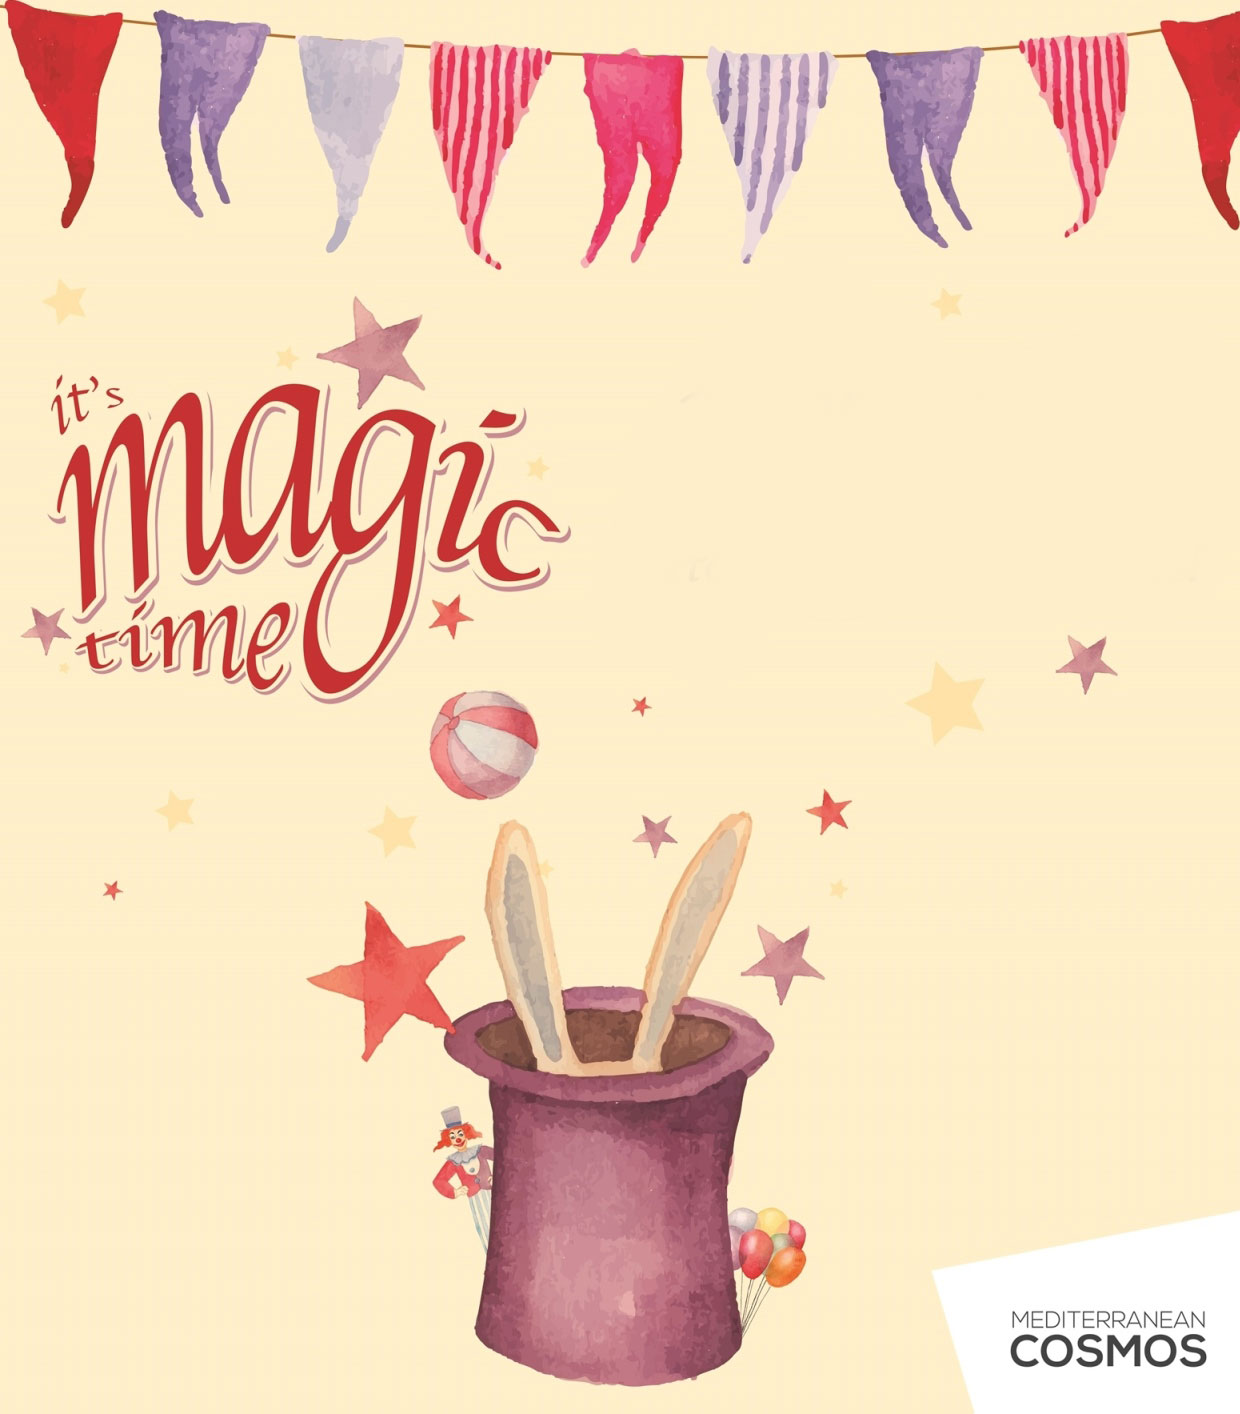 It's magic time @ Mediterranean Cosmos!